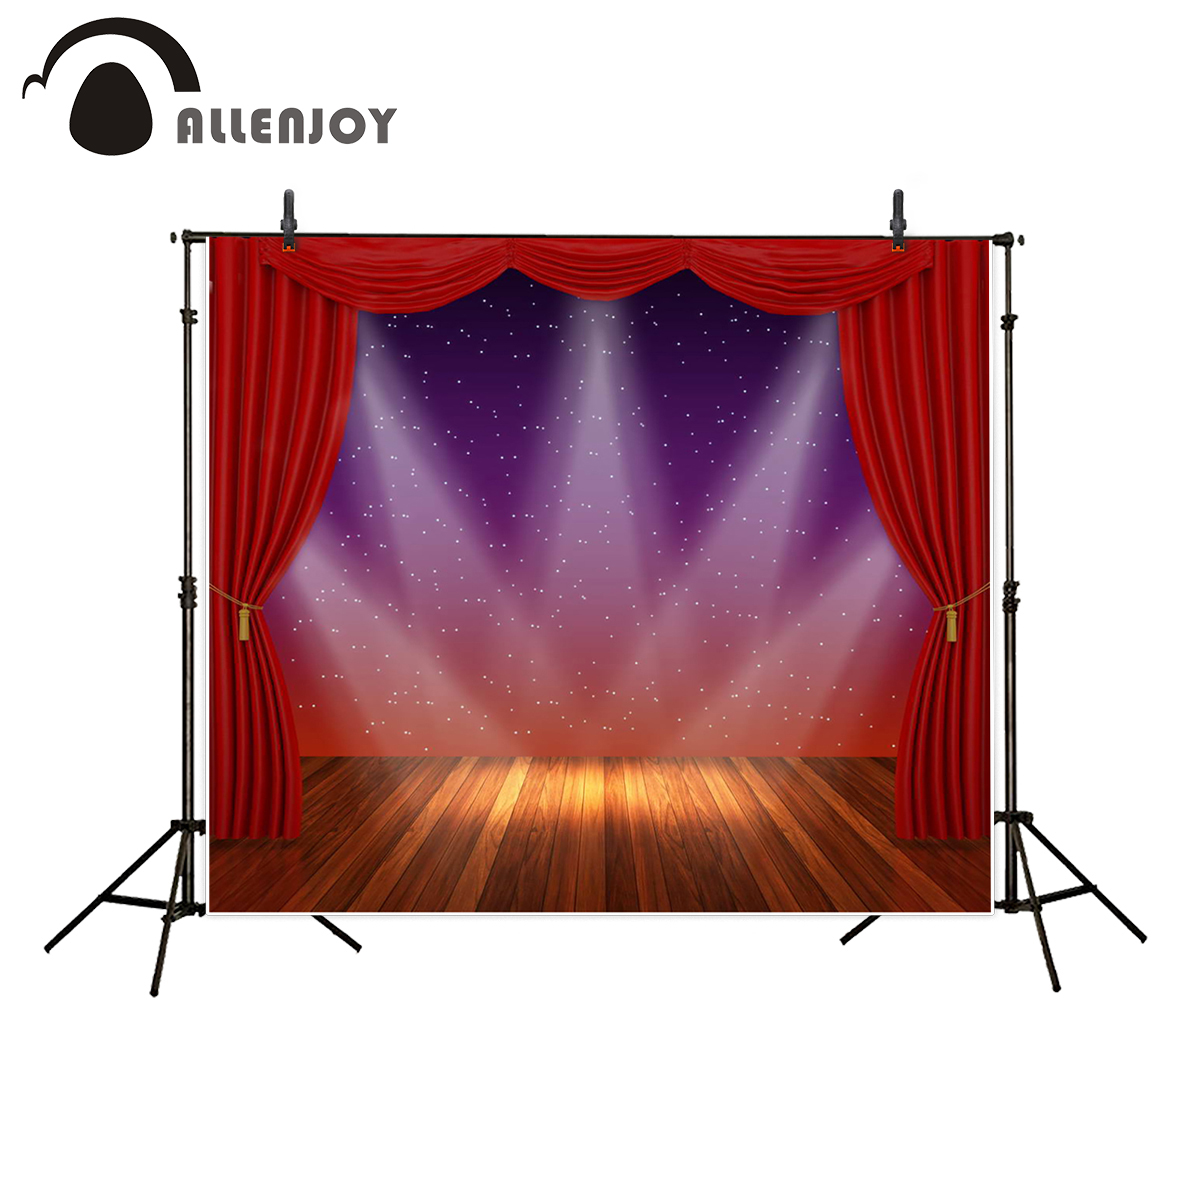 Allenjoy photography backdrops stage lighting curtain red background photography backdrop for photo studio 200*300cm 300cm 200cm about 10ft 6 5ft fundo butterflies fluttering woods3d baby photography backdrop background lk 2024